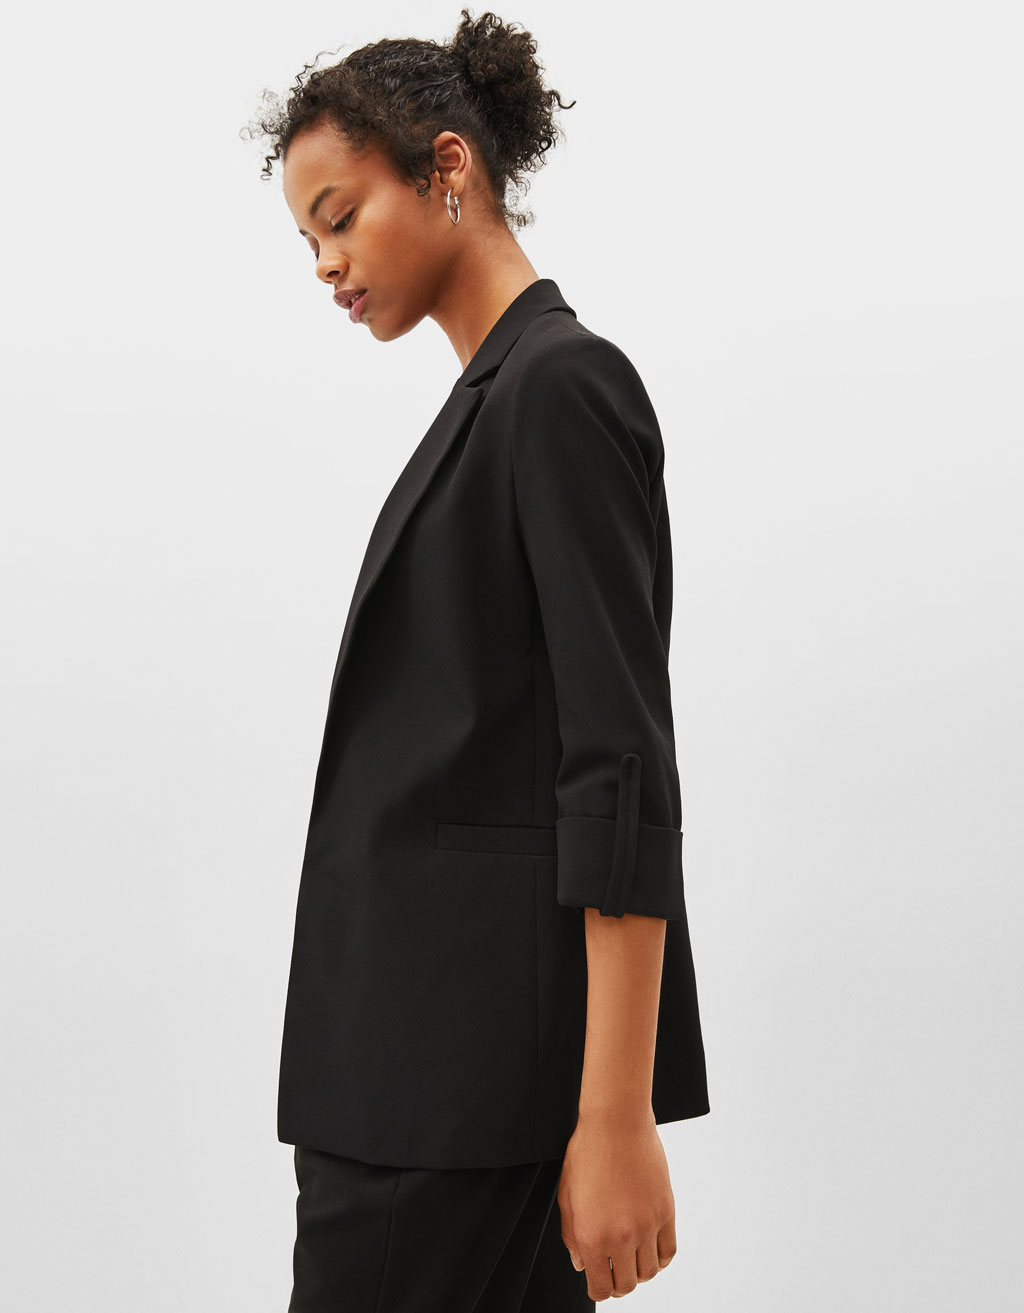 Blazer with rolled-up sleeves